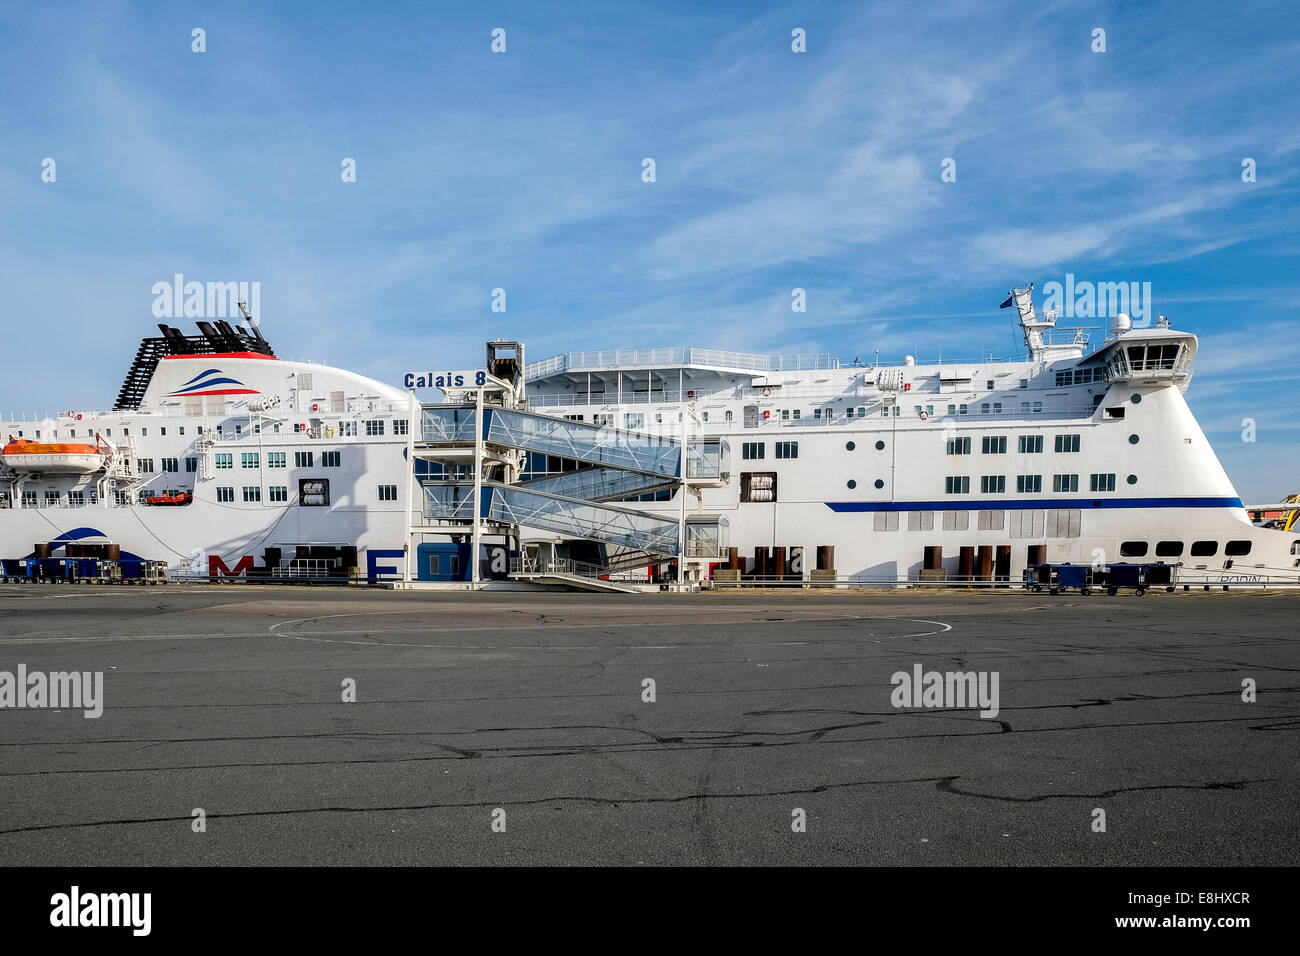 Ferry in port at Calais, France - Stock Image